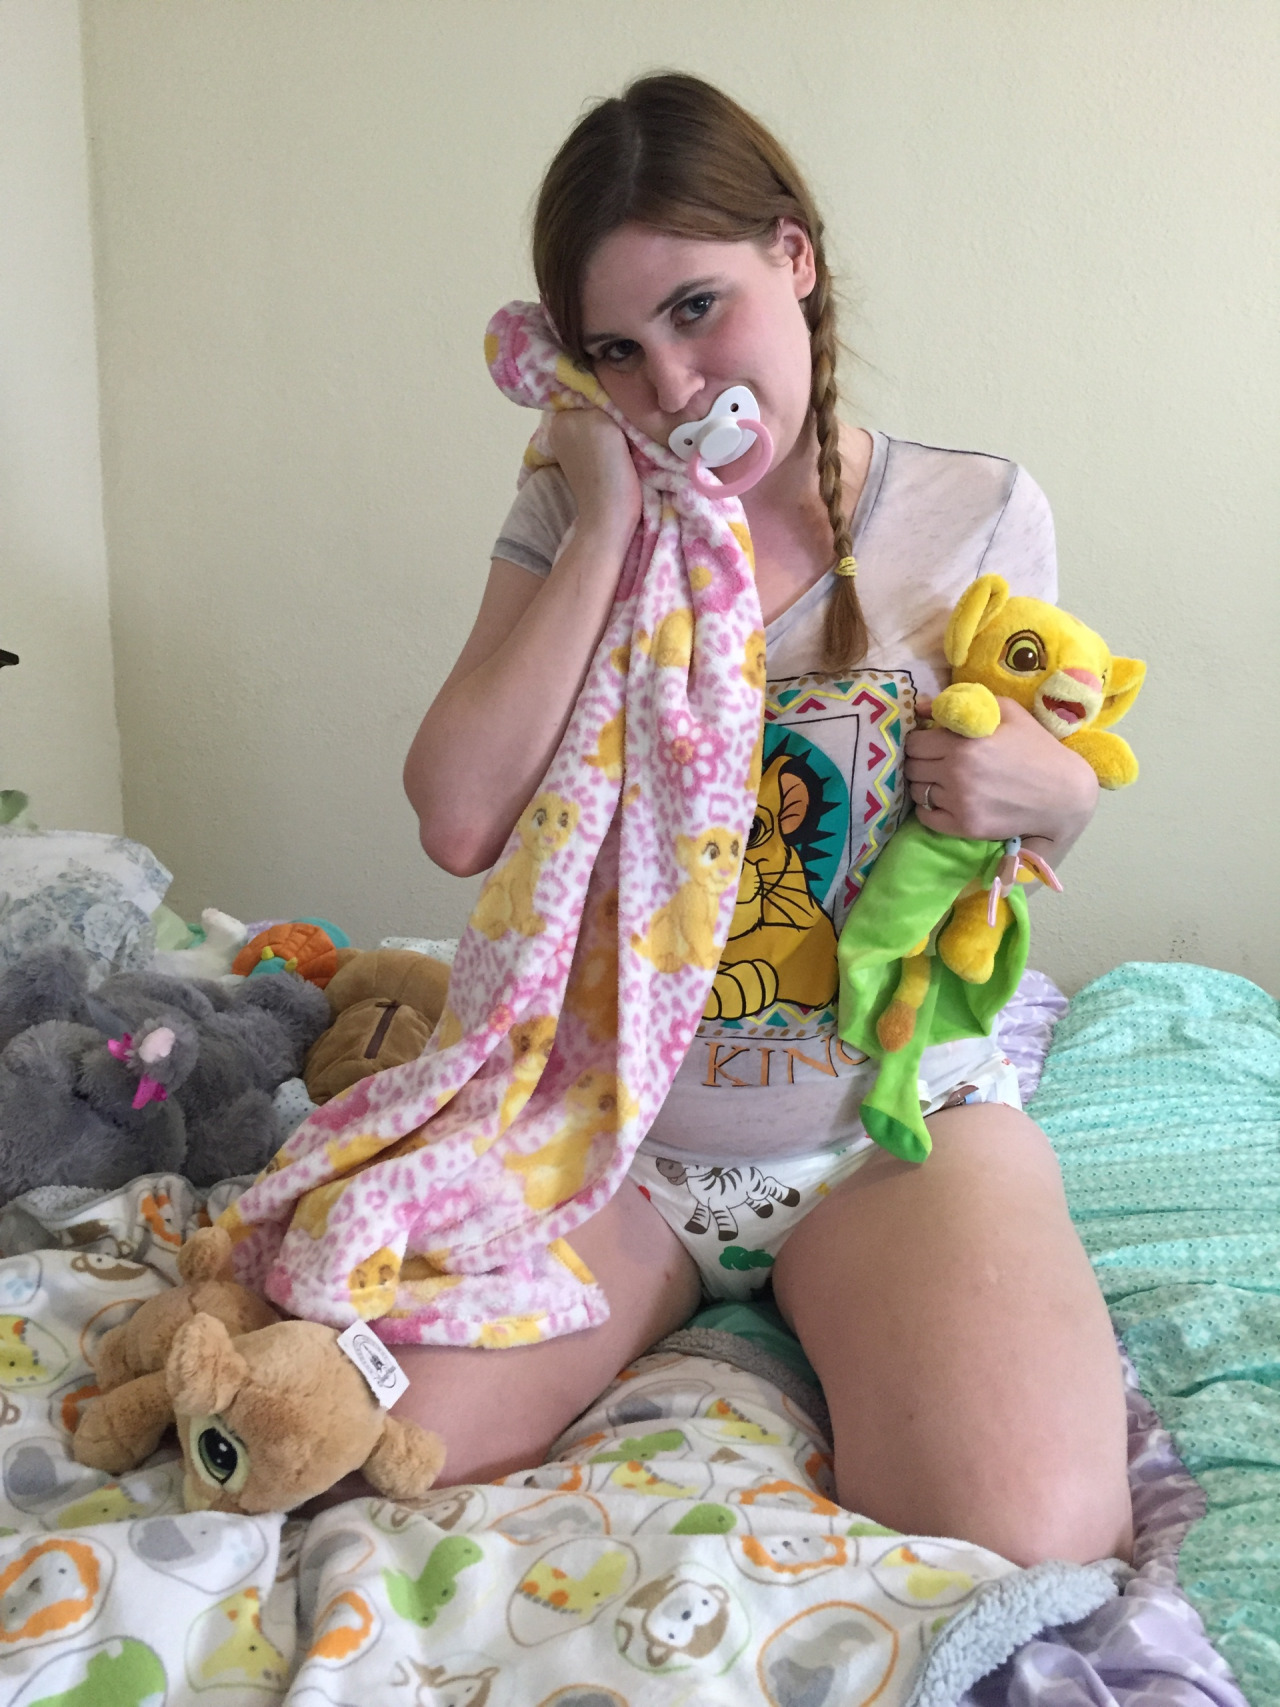 Teen abdl gallery, shitty asshole pictures